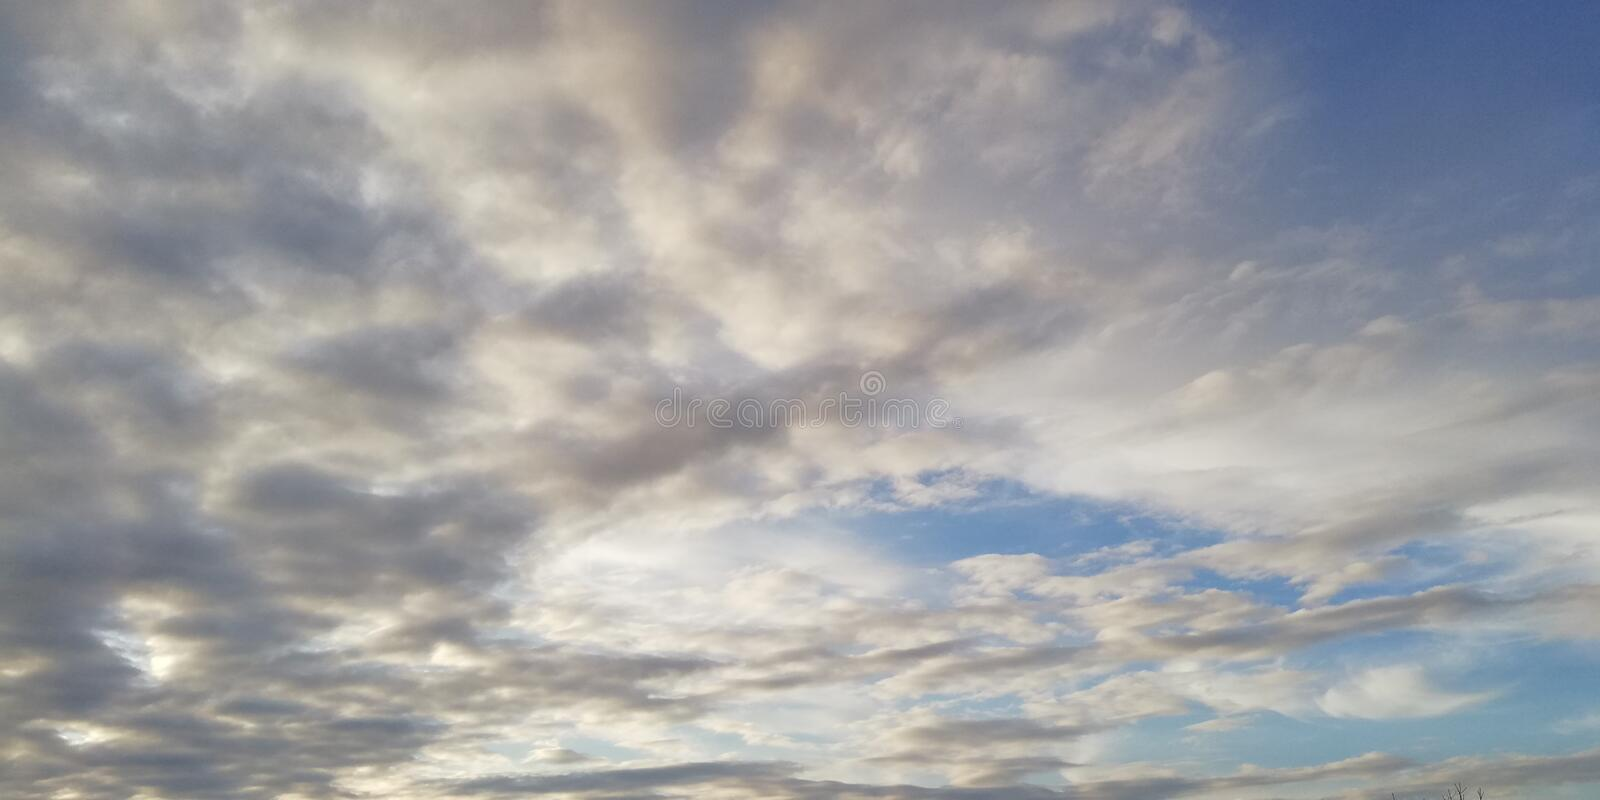 The battle of light and darkness. Light white clouds and dark clouds in the blue sky. Interesting unusual background royalty free stock images